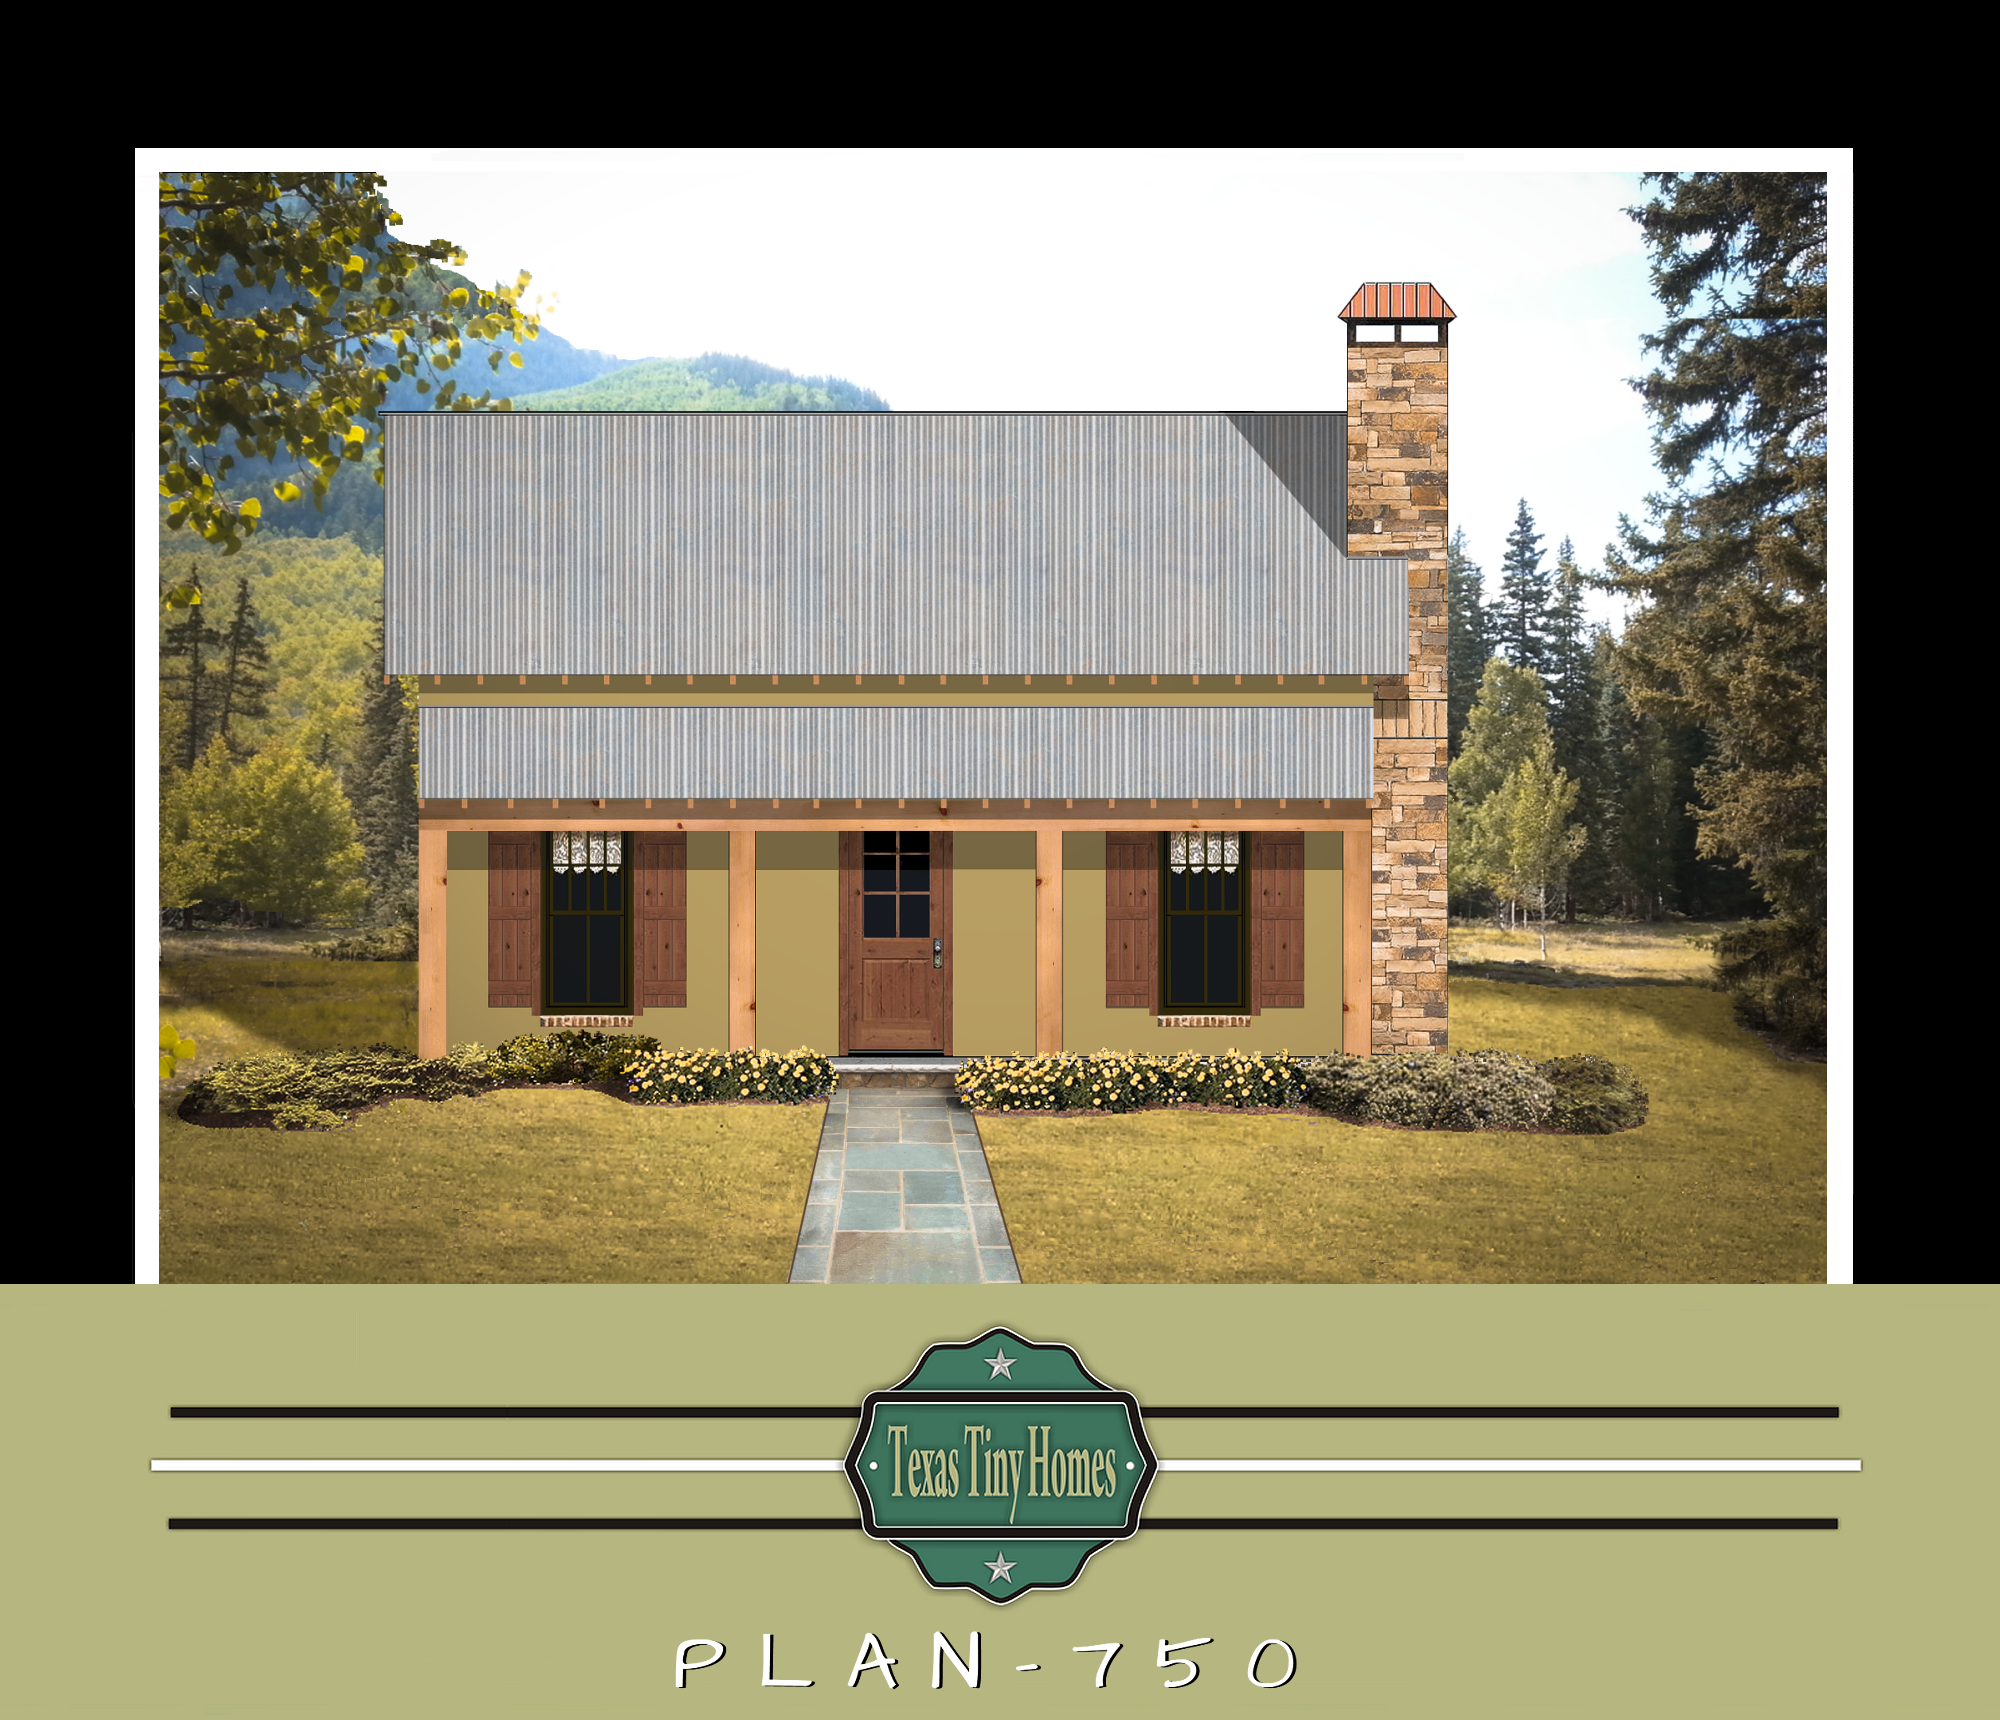 Texas tiny homes plan 750 for Small home builders texas